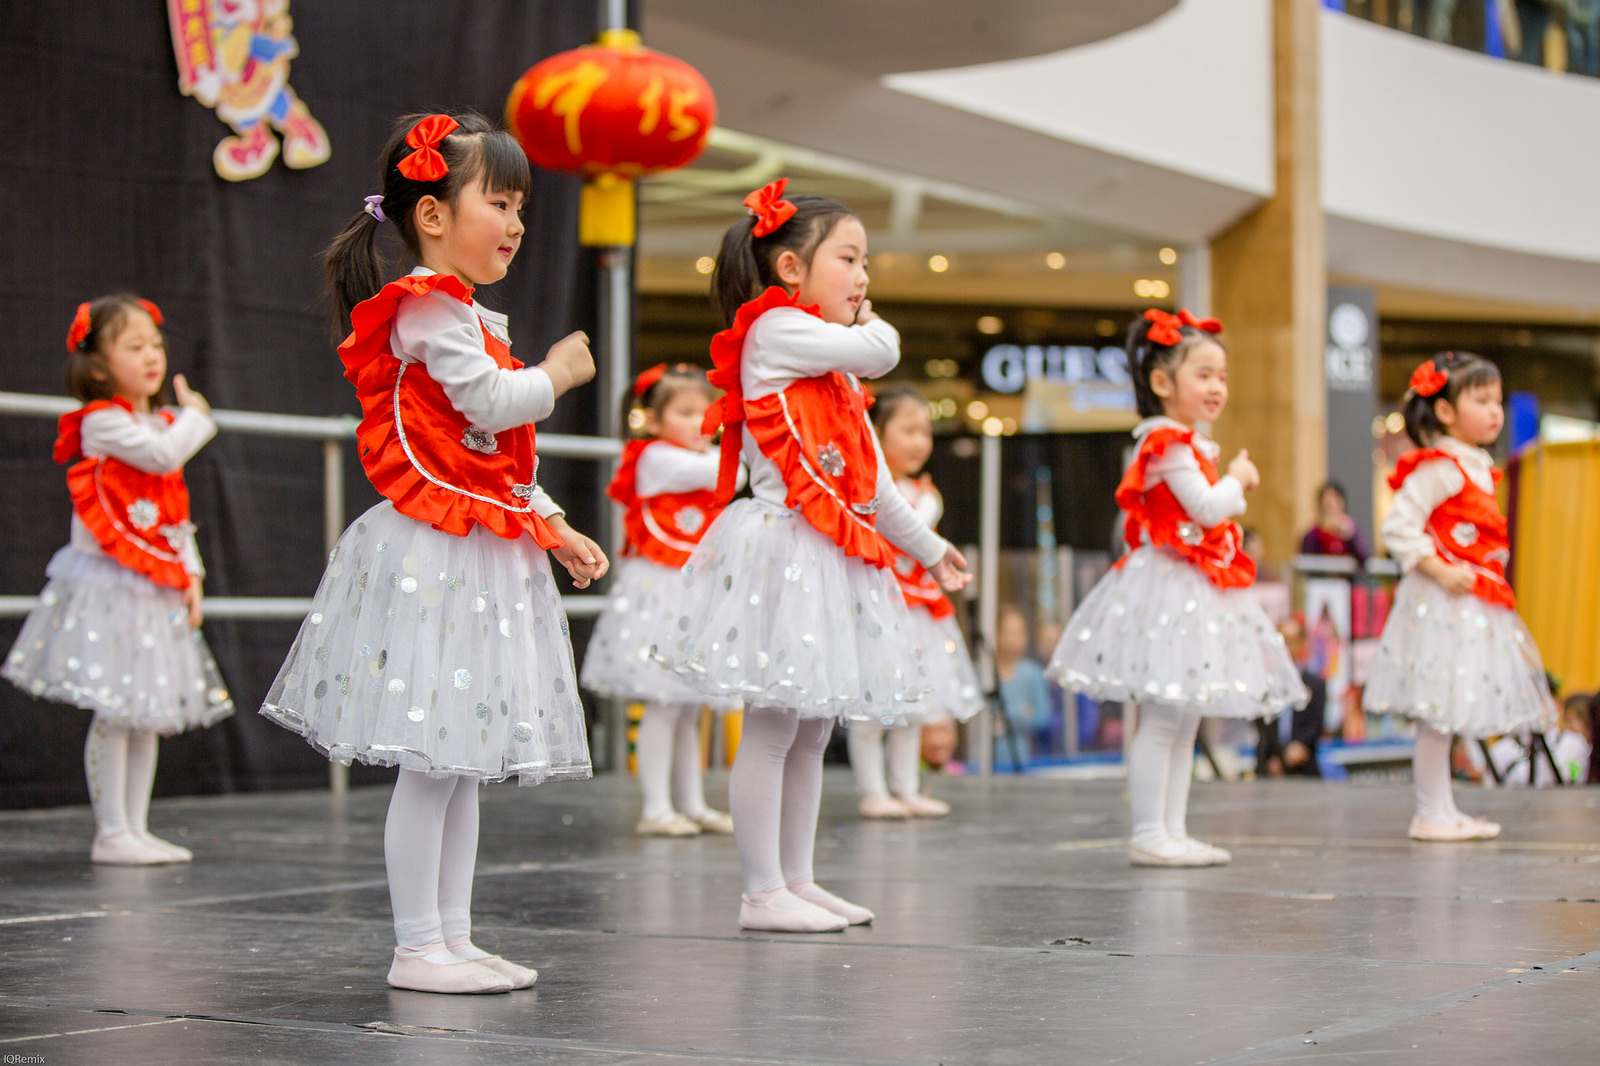 lunar new year6 Lunar Chinese New Year 2016 in Edmonton